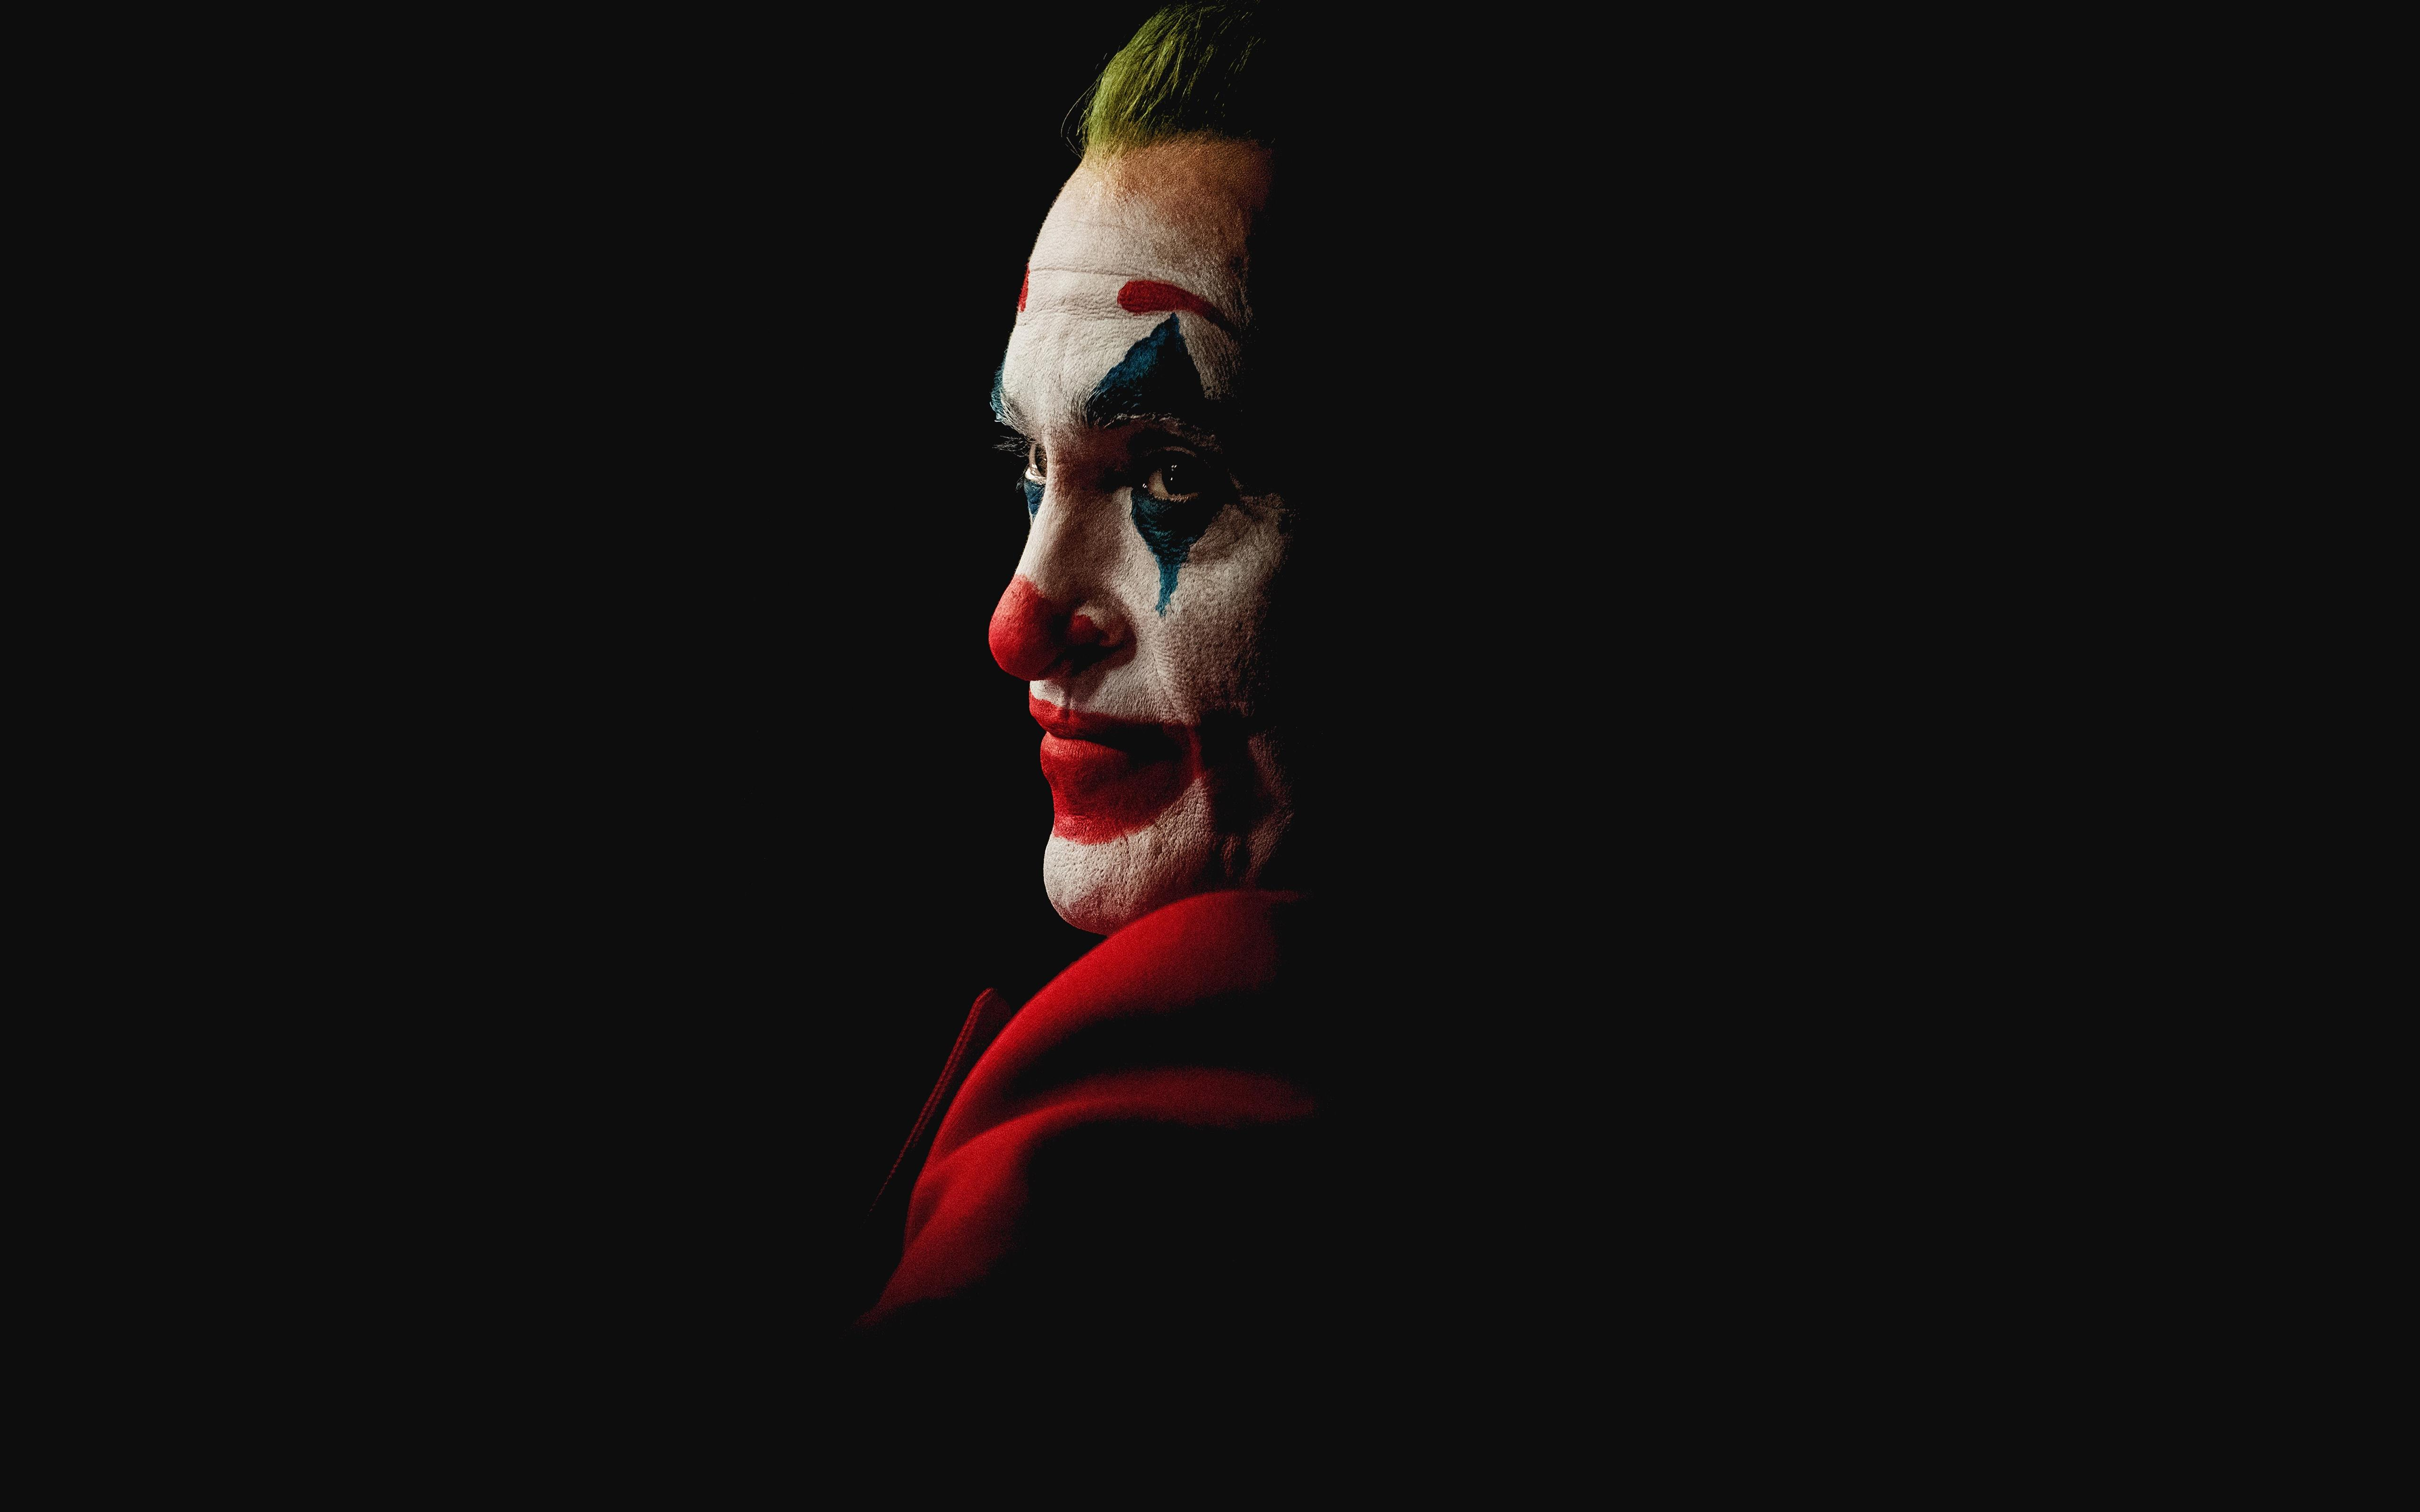 5120x3200 Joker 2019 Film 7K Wallpaper